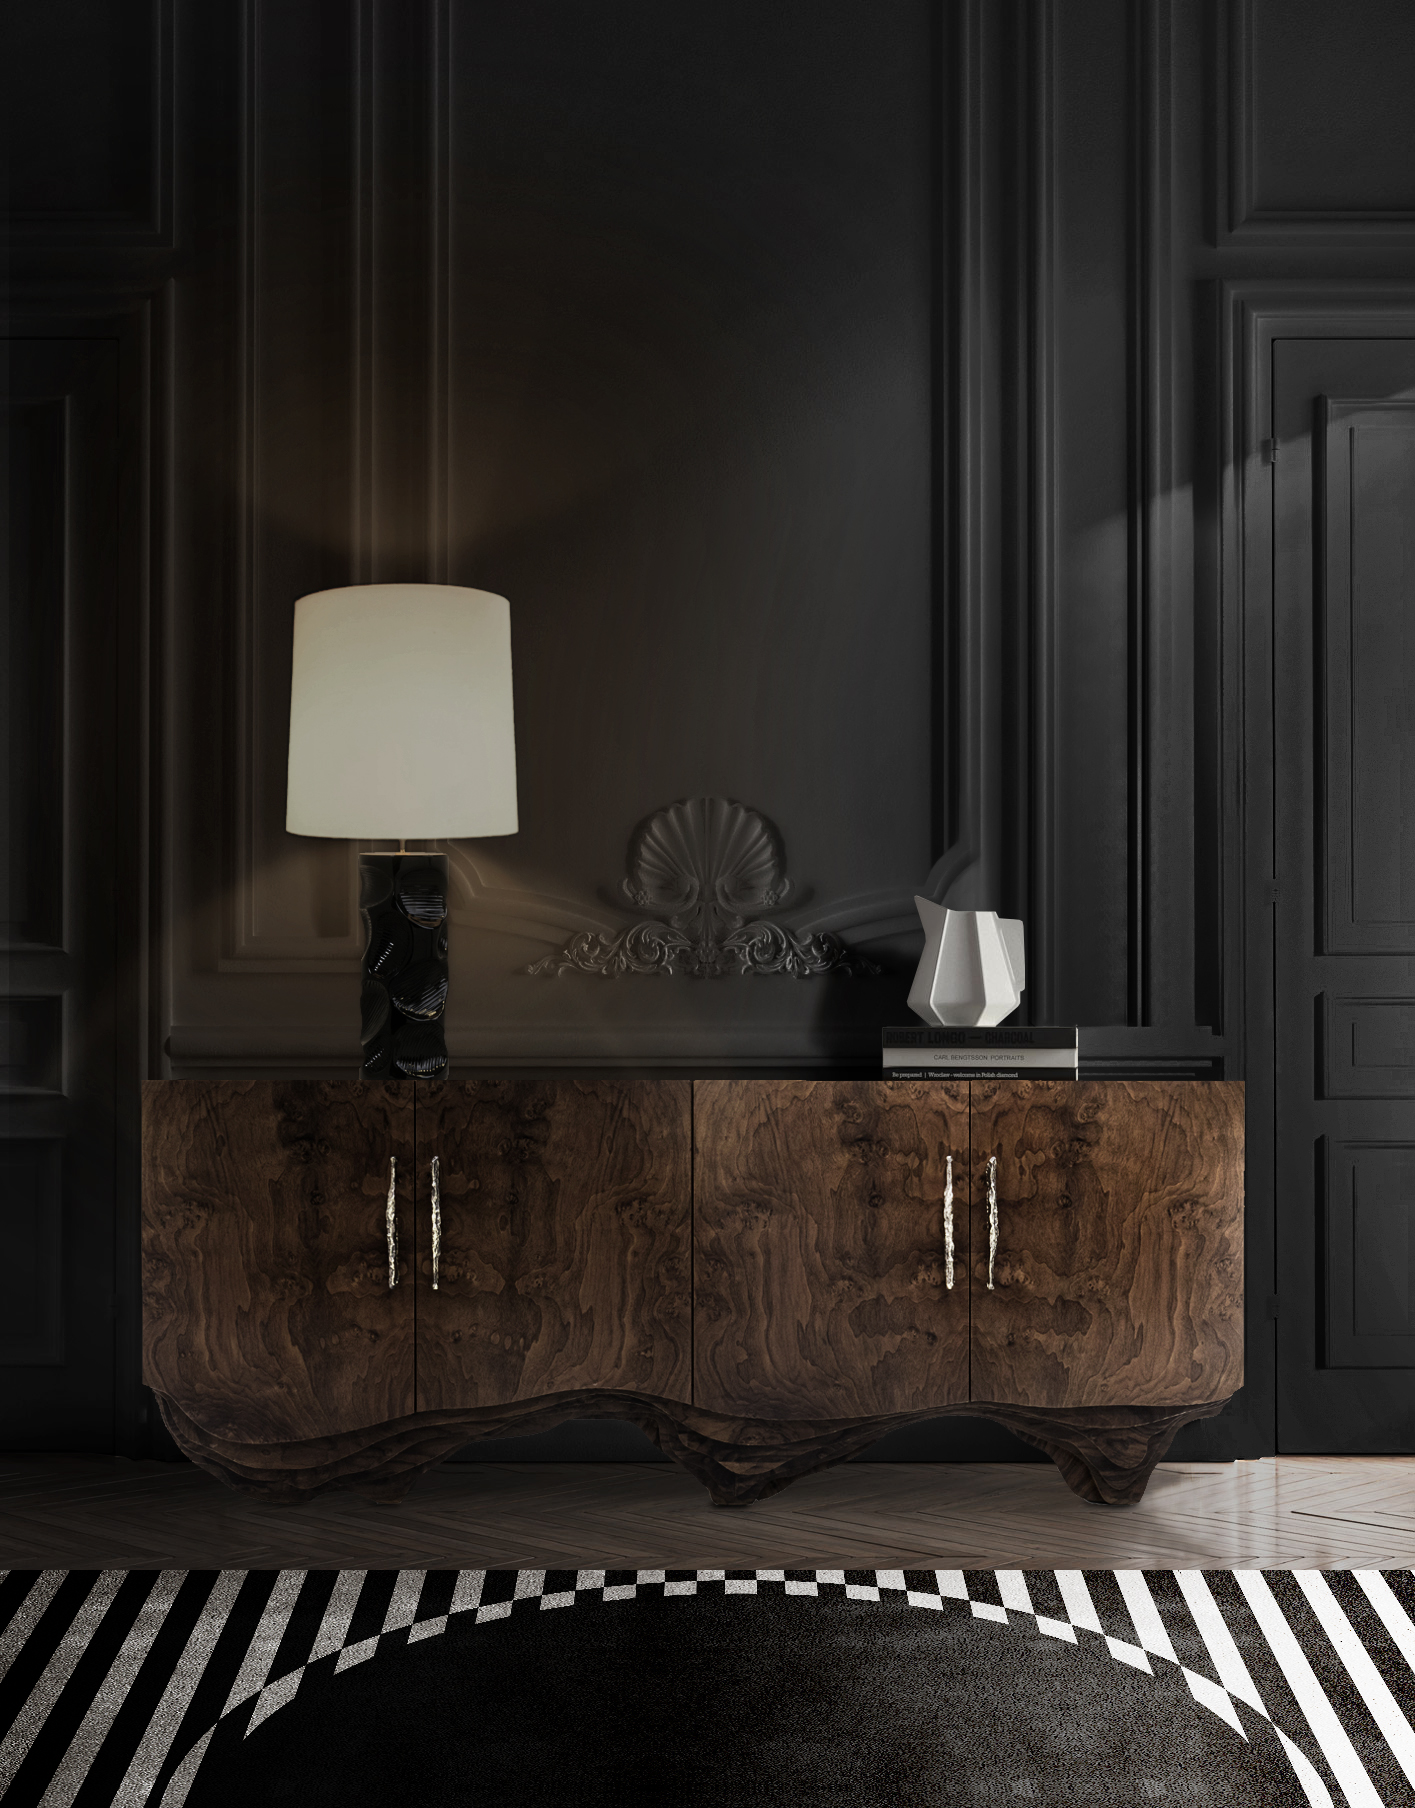 BRABBU Sideboards to Upgrade Your Home Decor